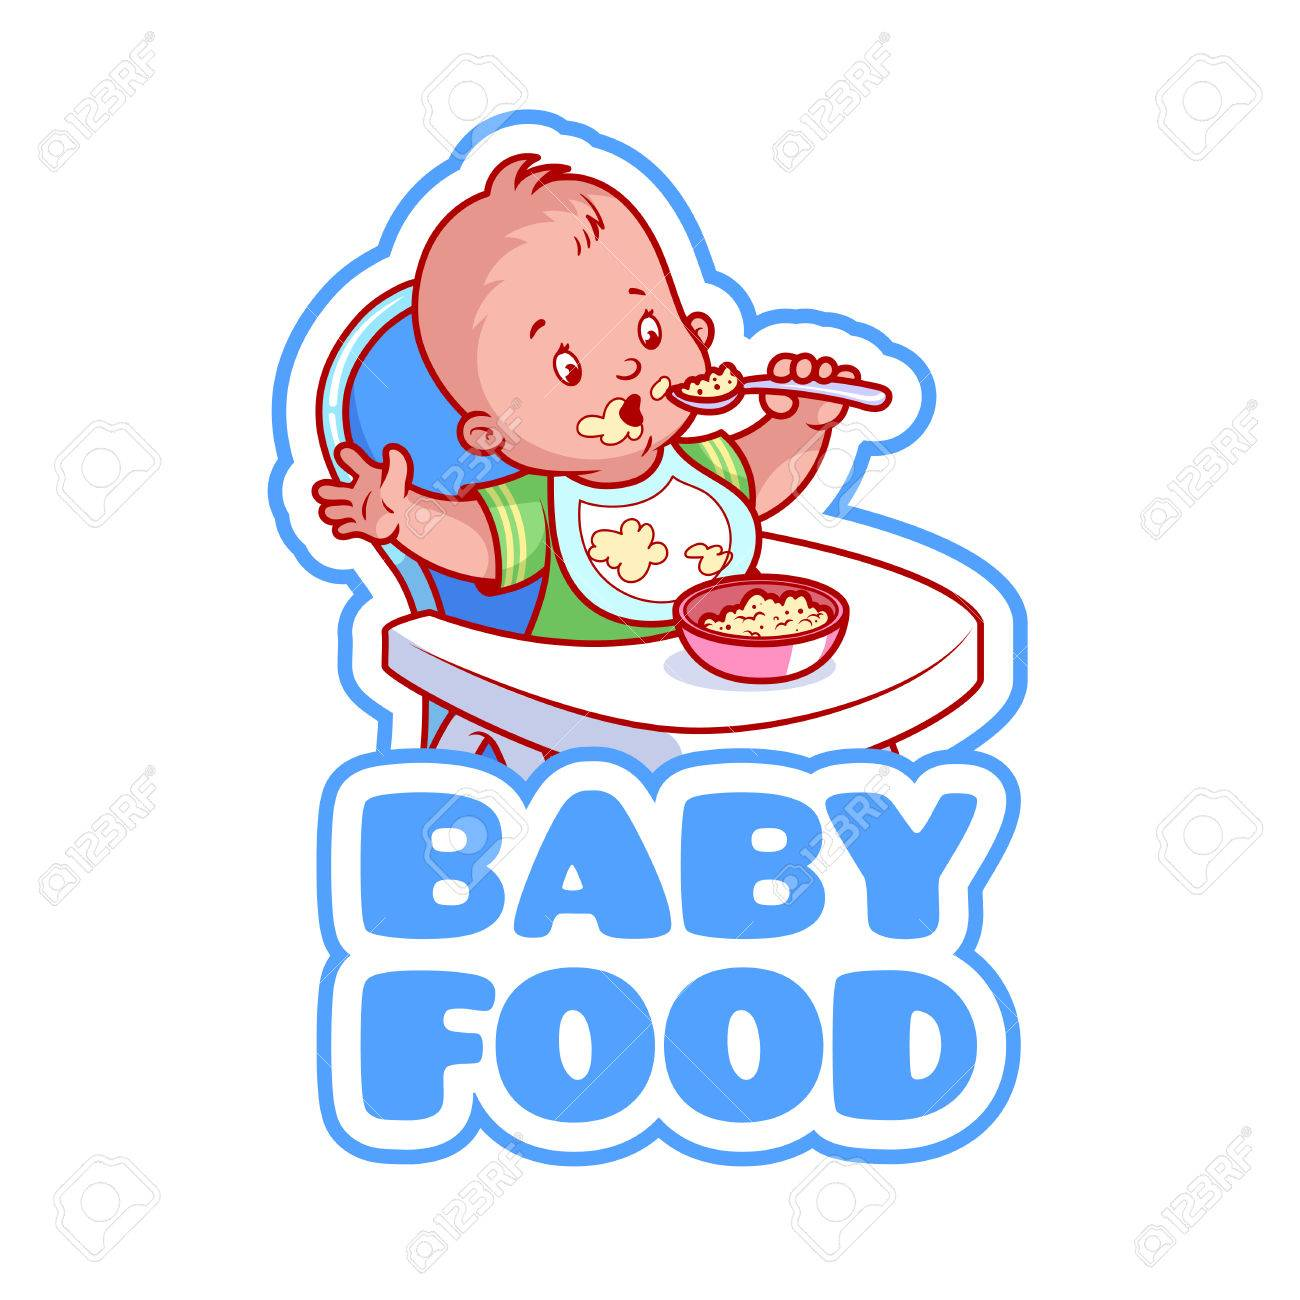 Cute kid in baby highchair with plate of porridge. Logo for baby food company.  sc 1 st  123RF.com & Cute Kid In Baby Highchair With Plate Of Porridge. Logo For Baby ...